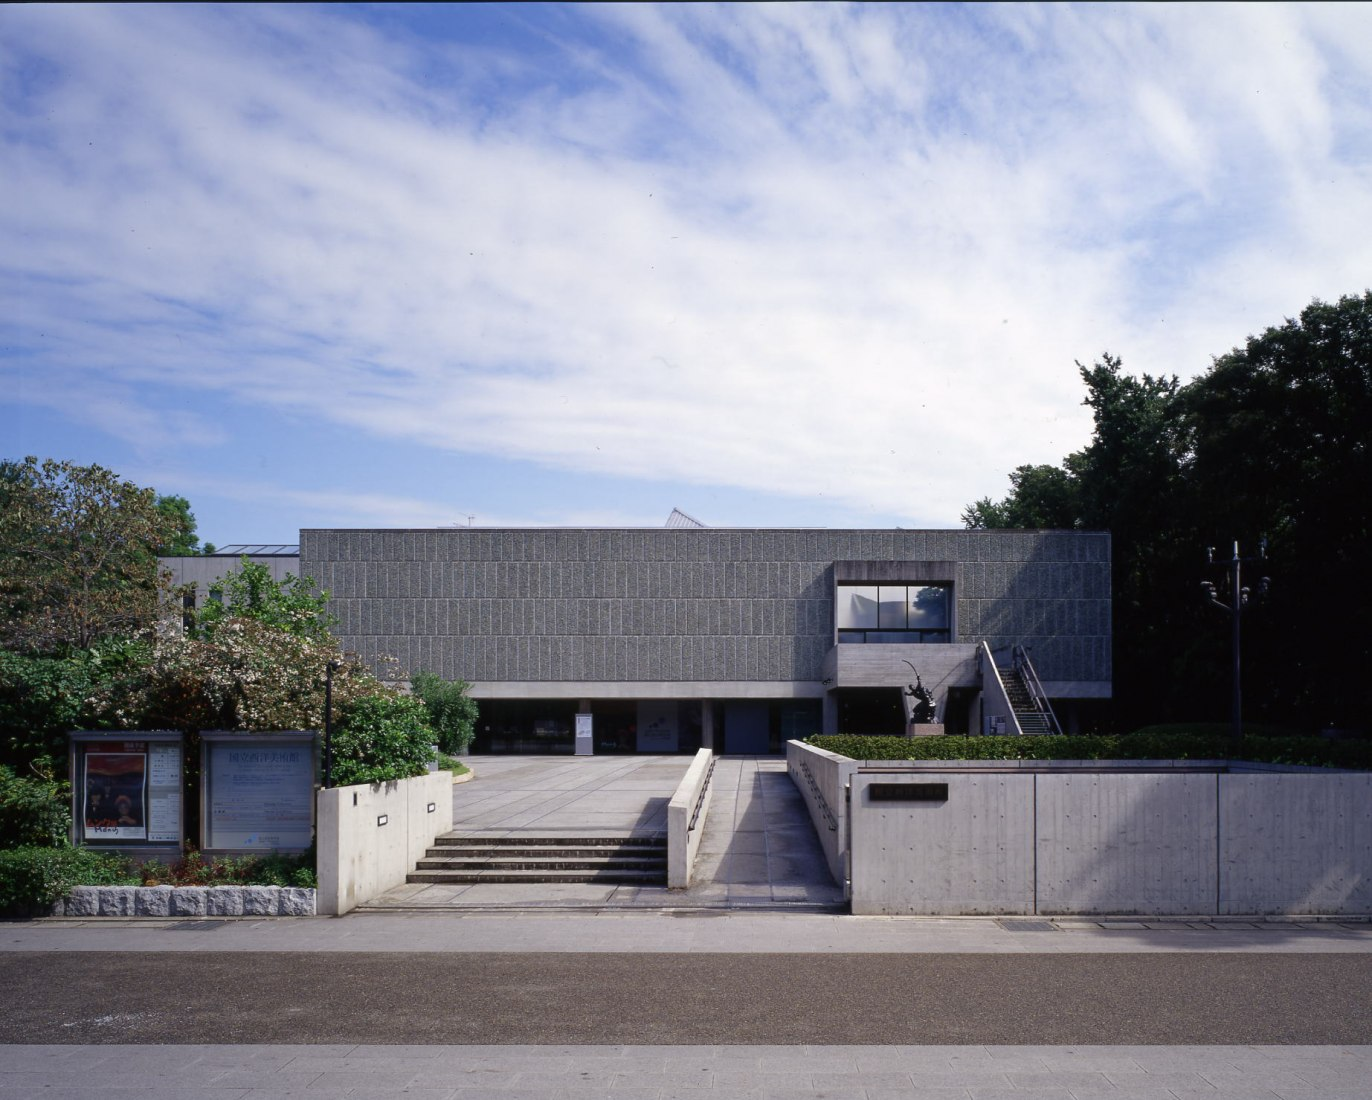 National Museum of Western Art, Tokyo. Photo Credit: National Museum of Western Art